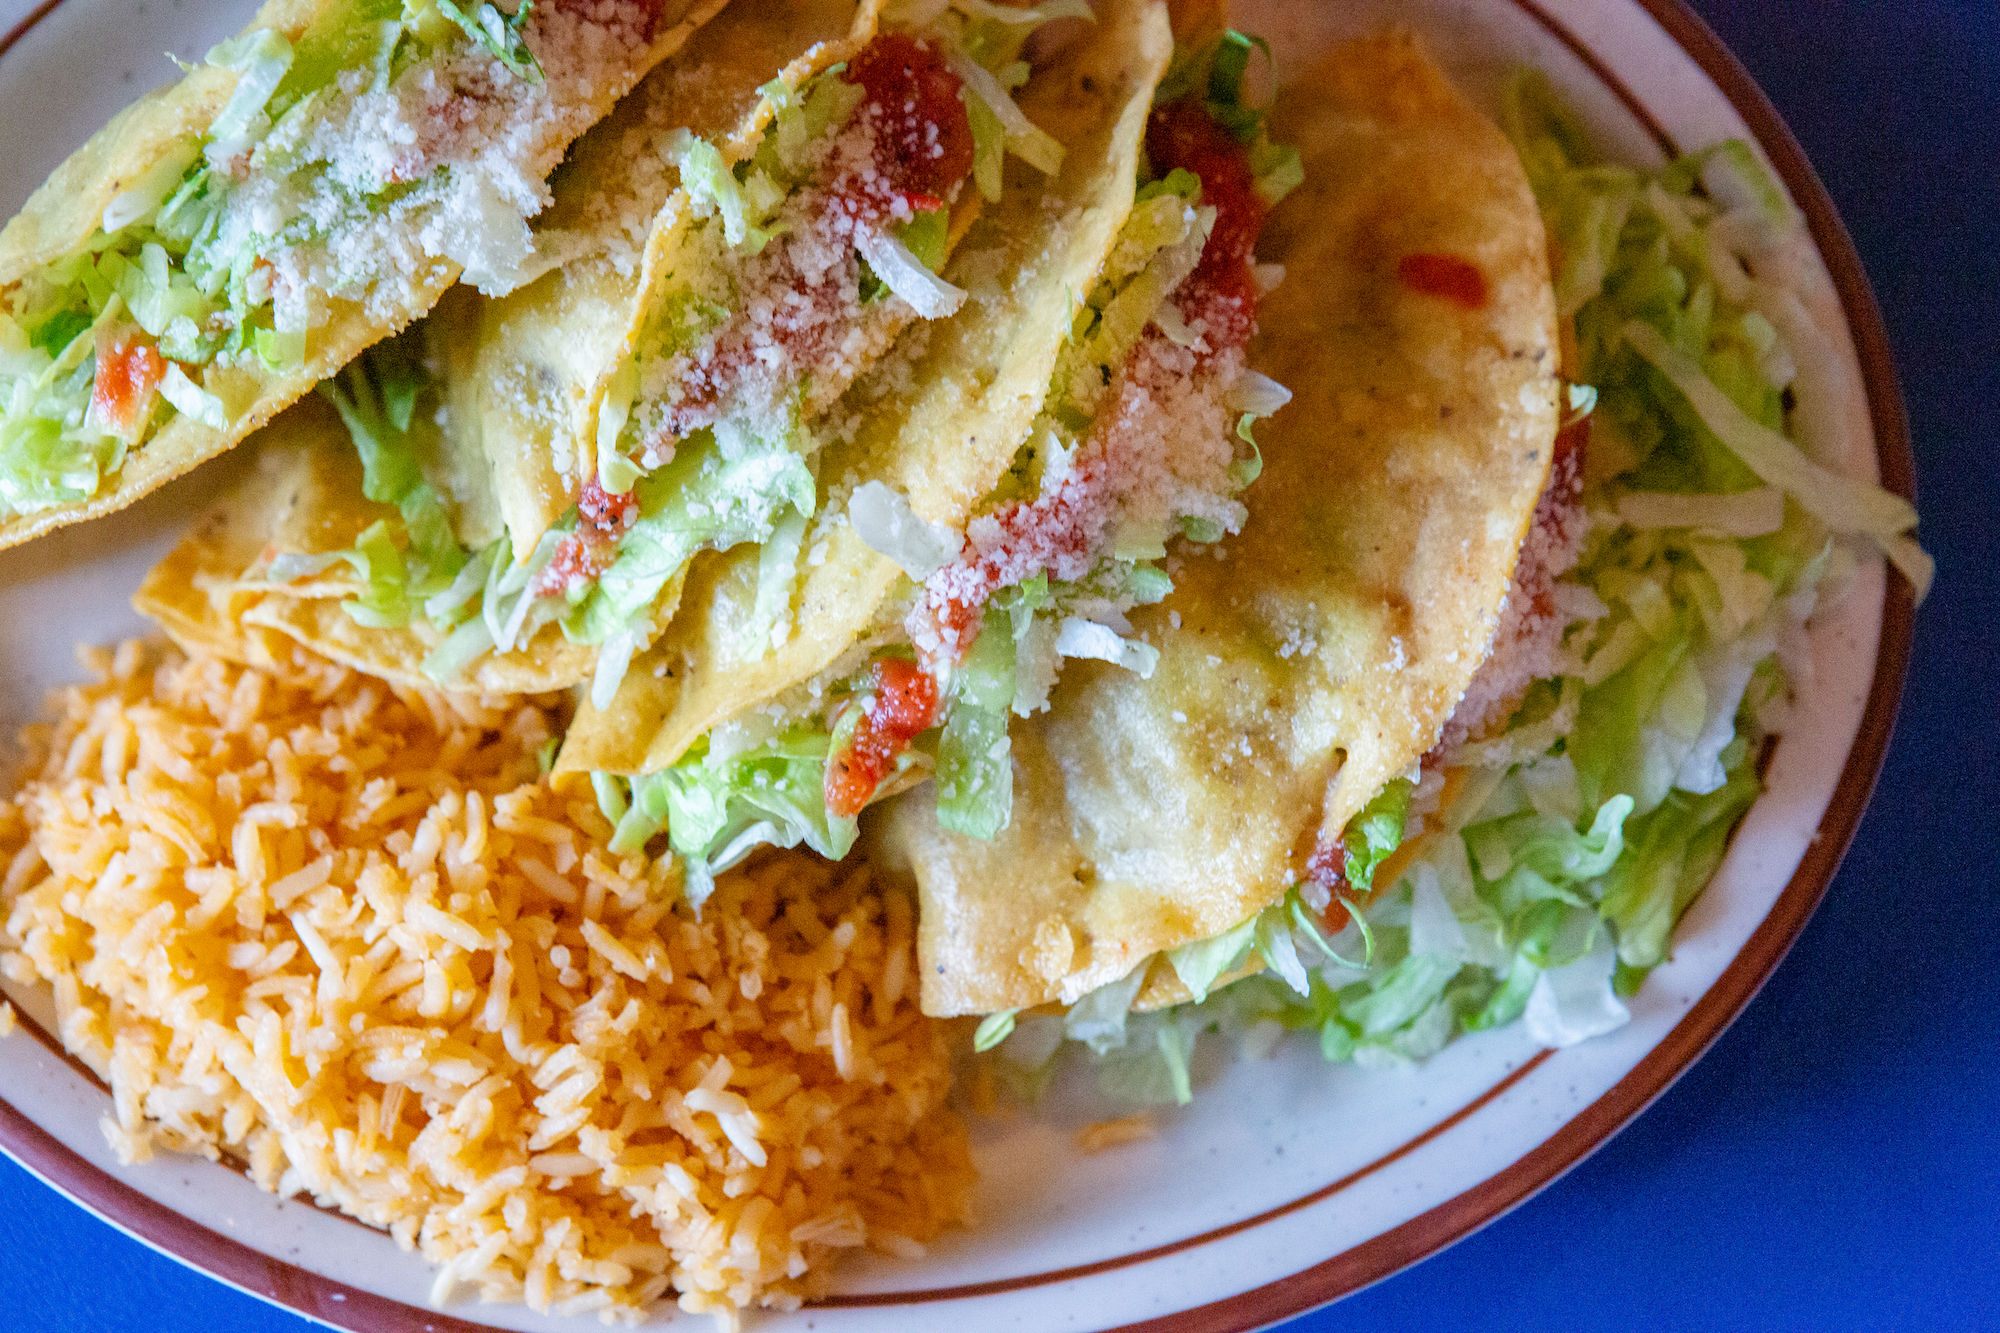 A plate of Kansas City-style tacos from Manny's